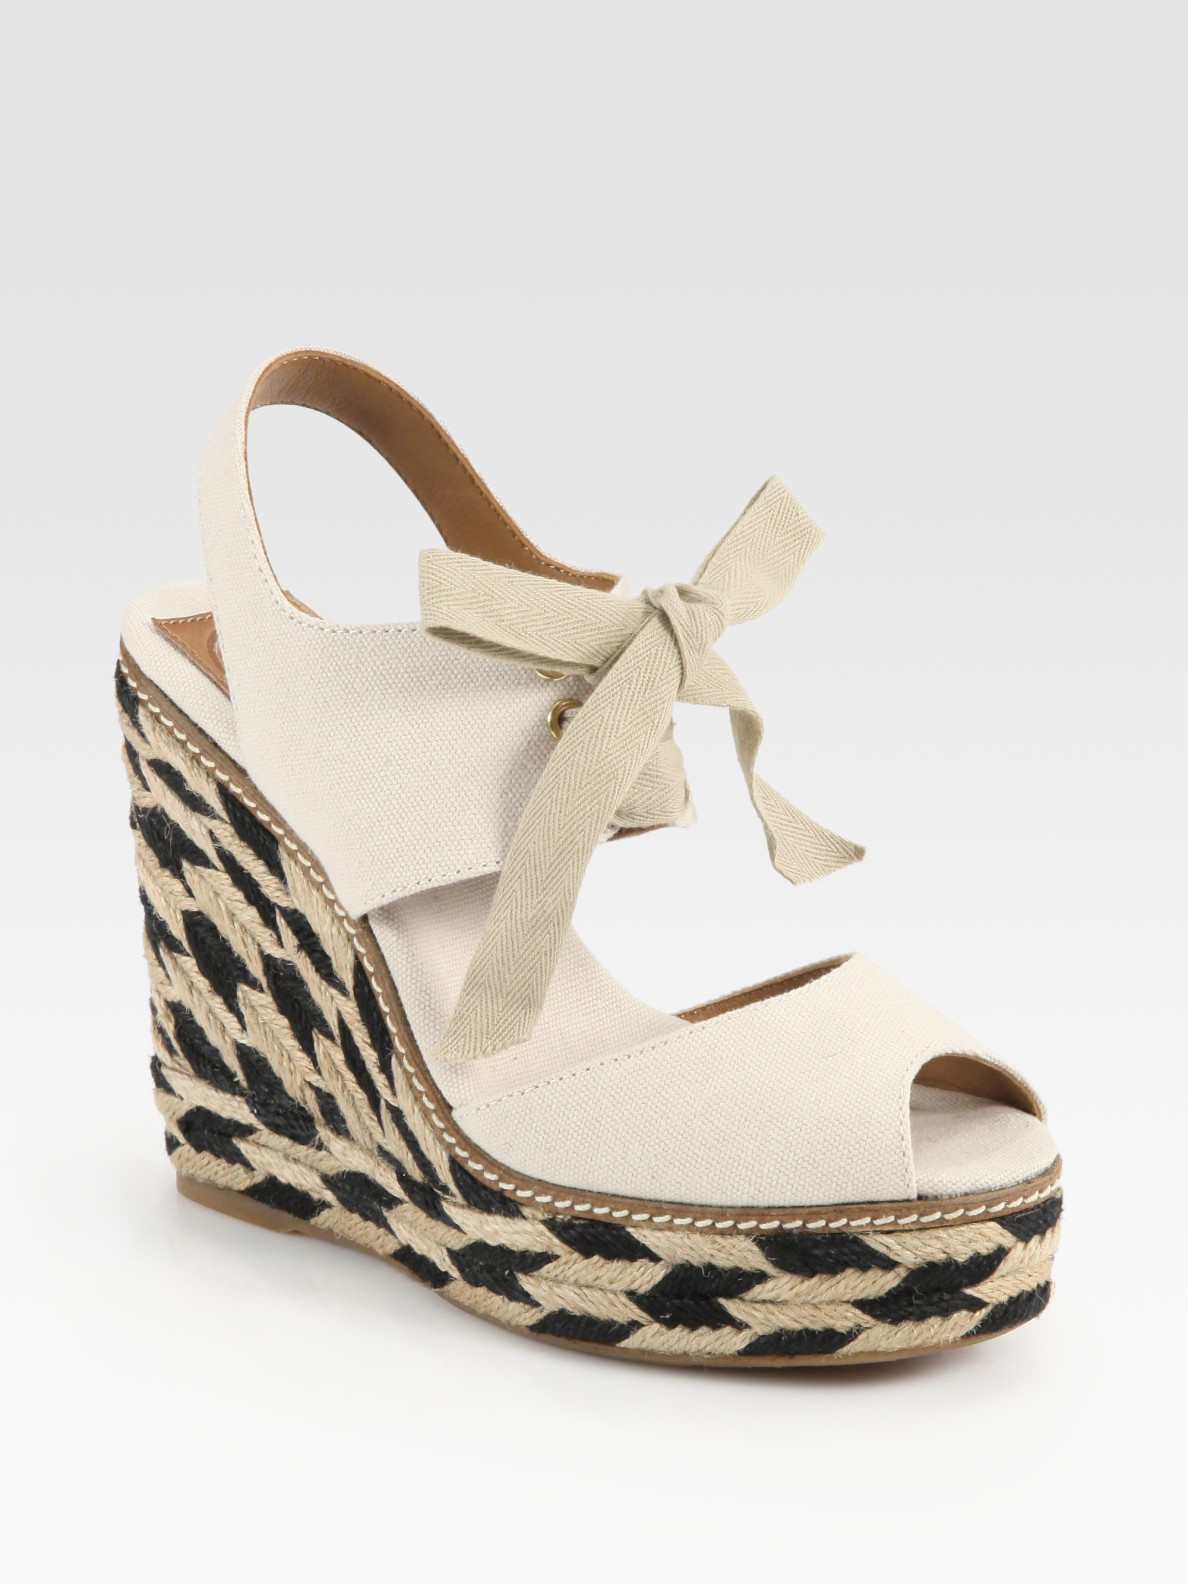 Tory Burch Linley Lace Up Mixed Media Espadrille Wedge